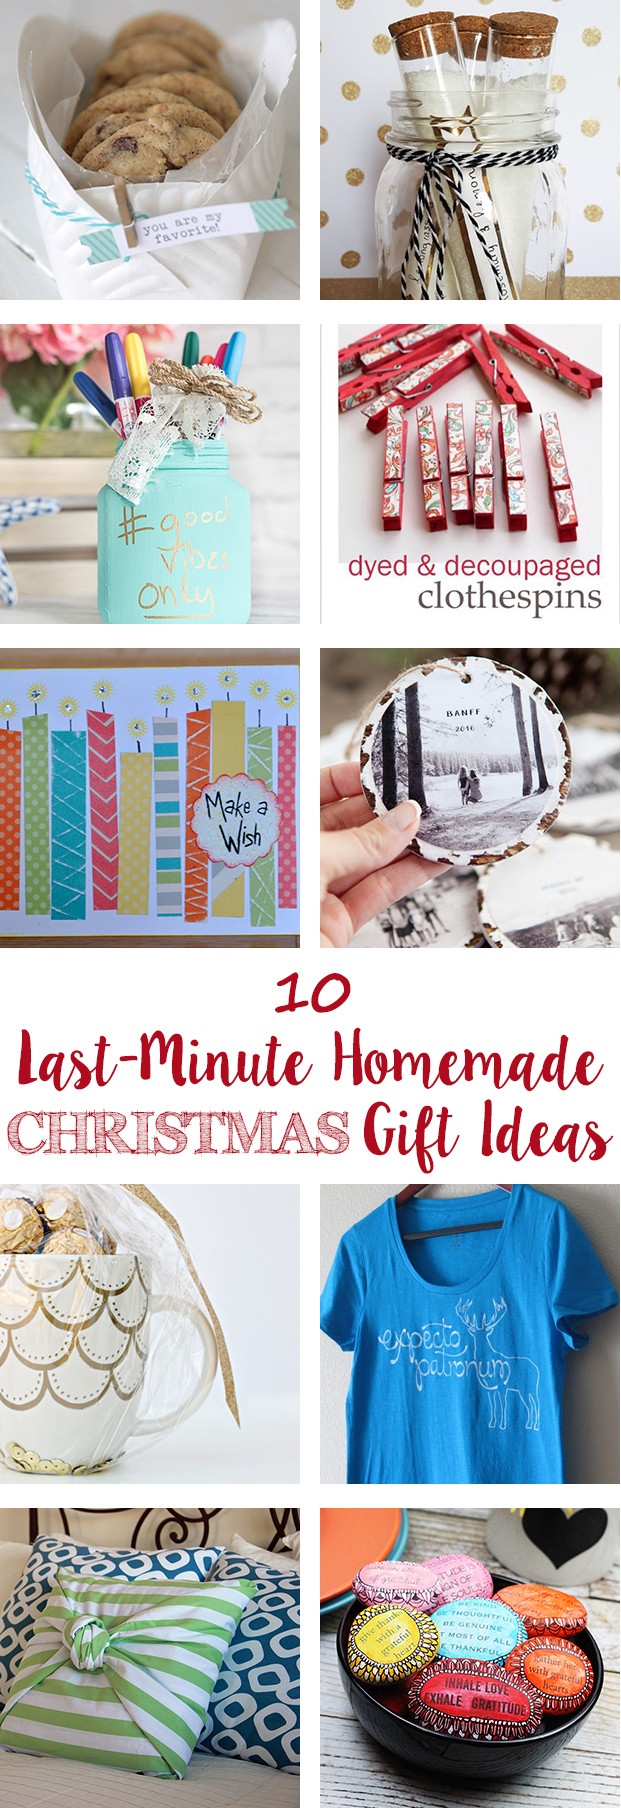 Best ideas about Last Minute Christmas Gift Ideas . Save or Pin Last Minute Homemade Christmas Gift Ideas • Rose Clearfield Now.